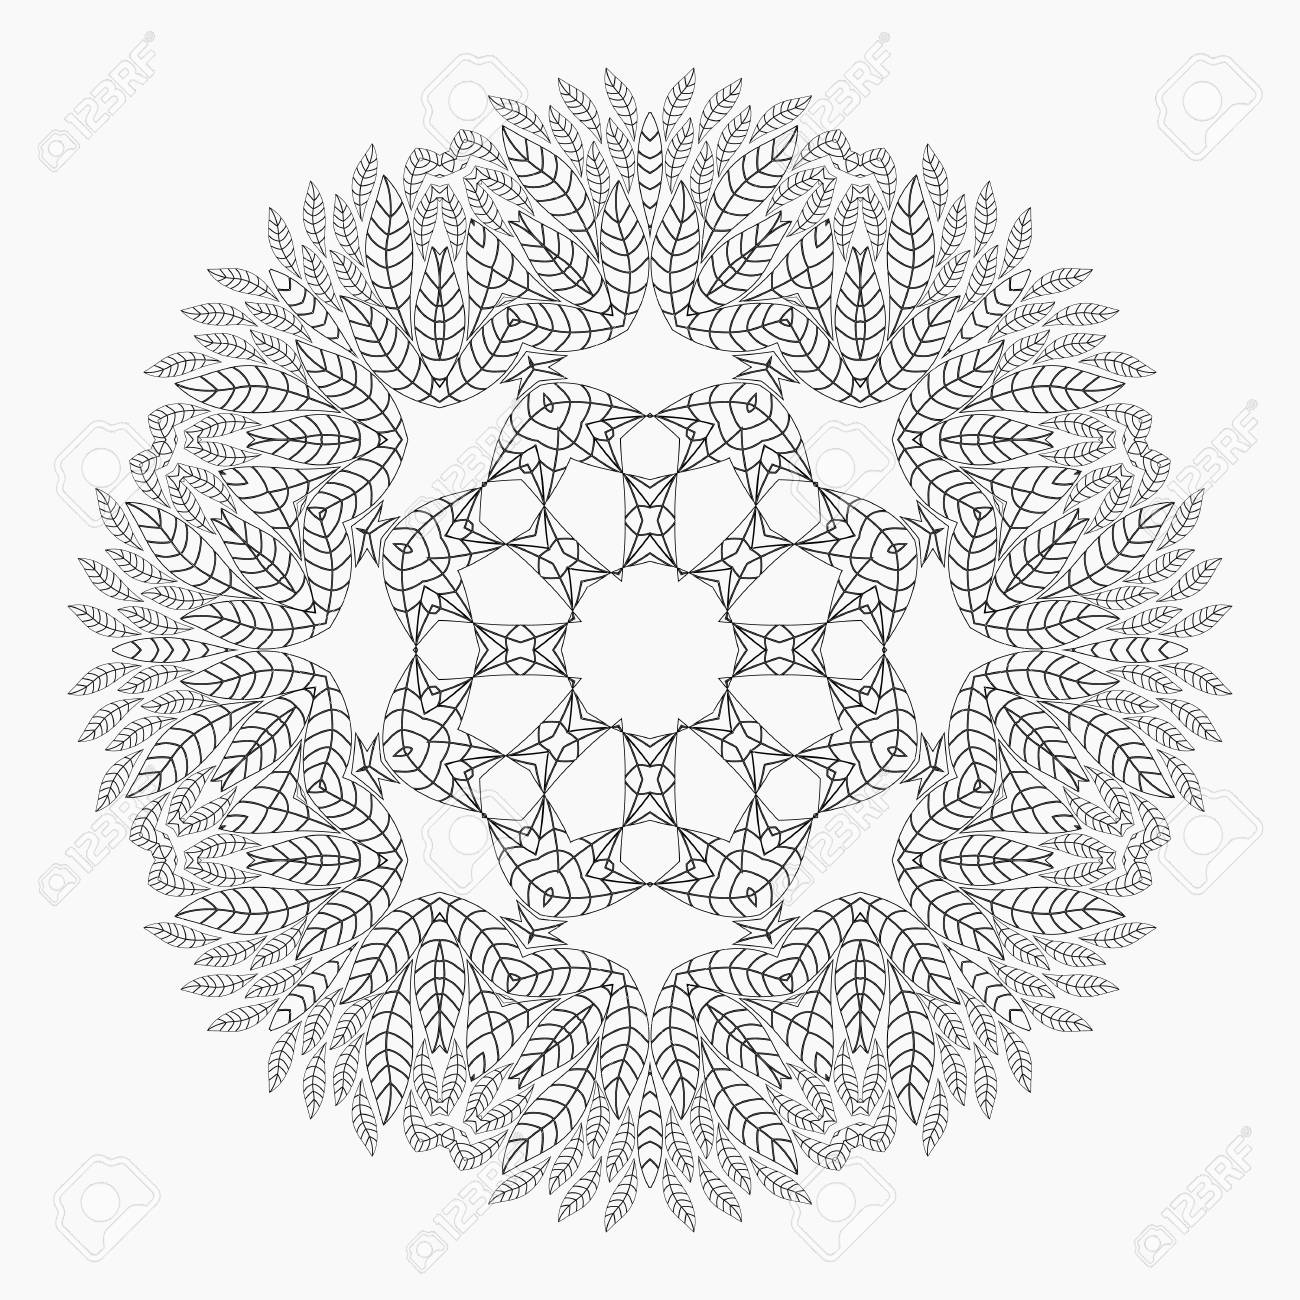 Antistress Coloring Pages For Adults Monochrome Circular Lace